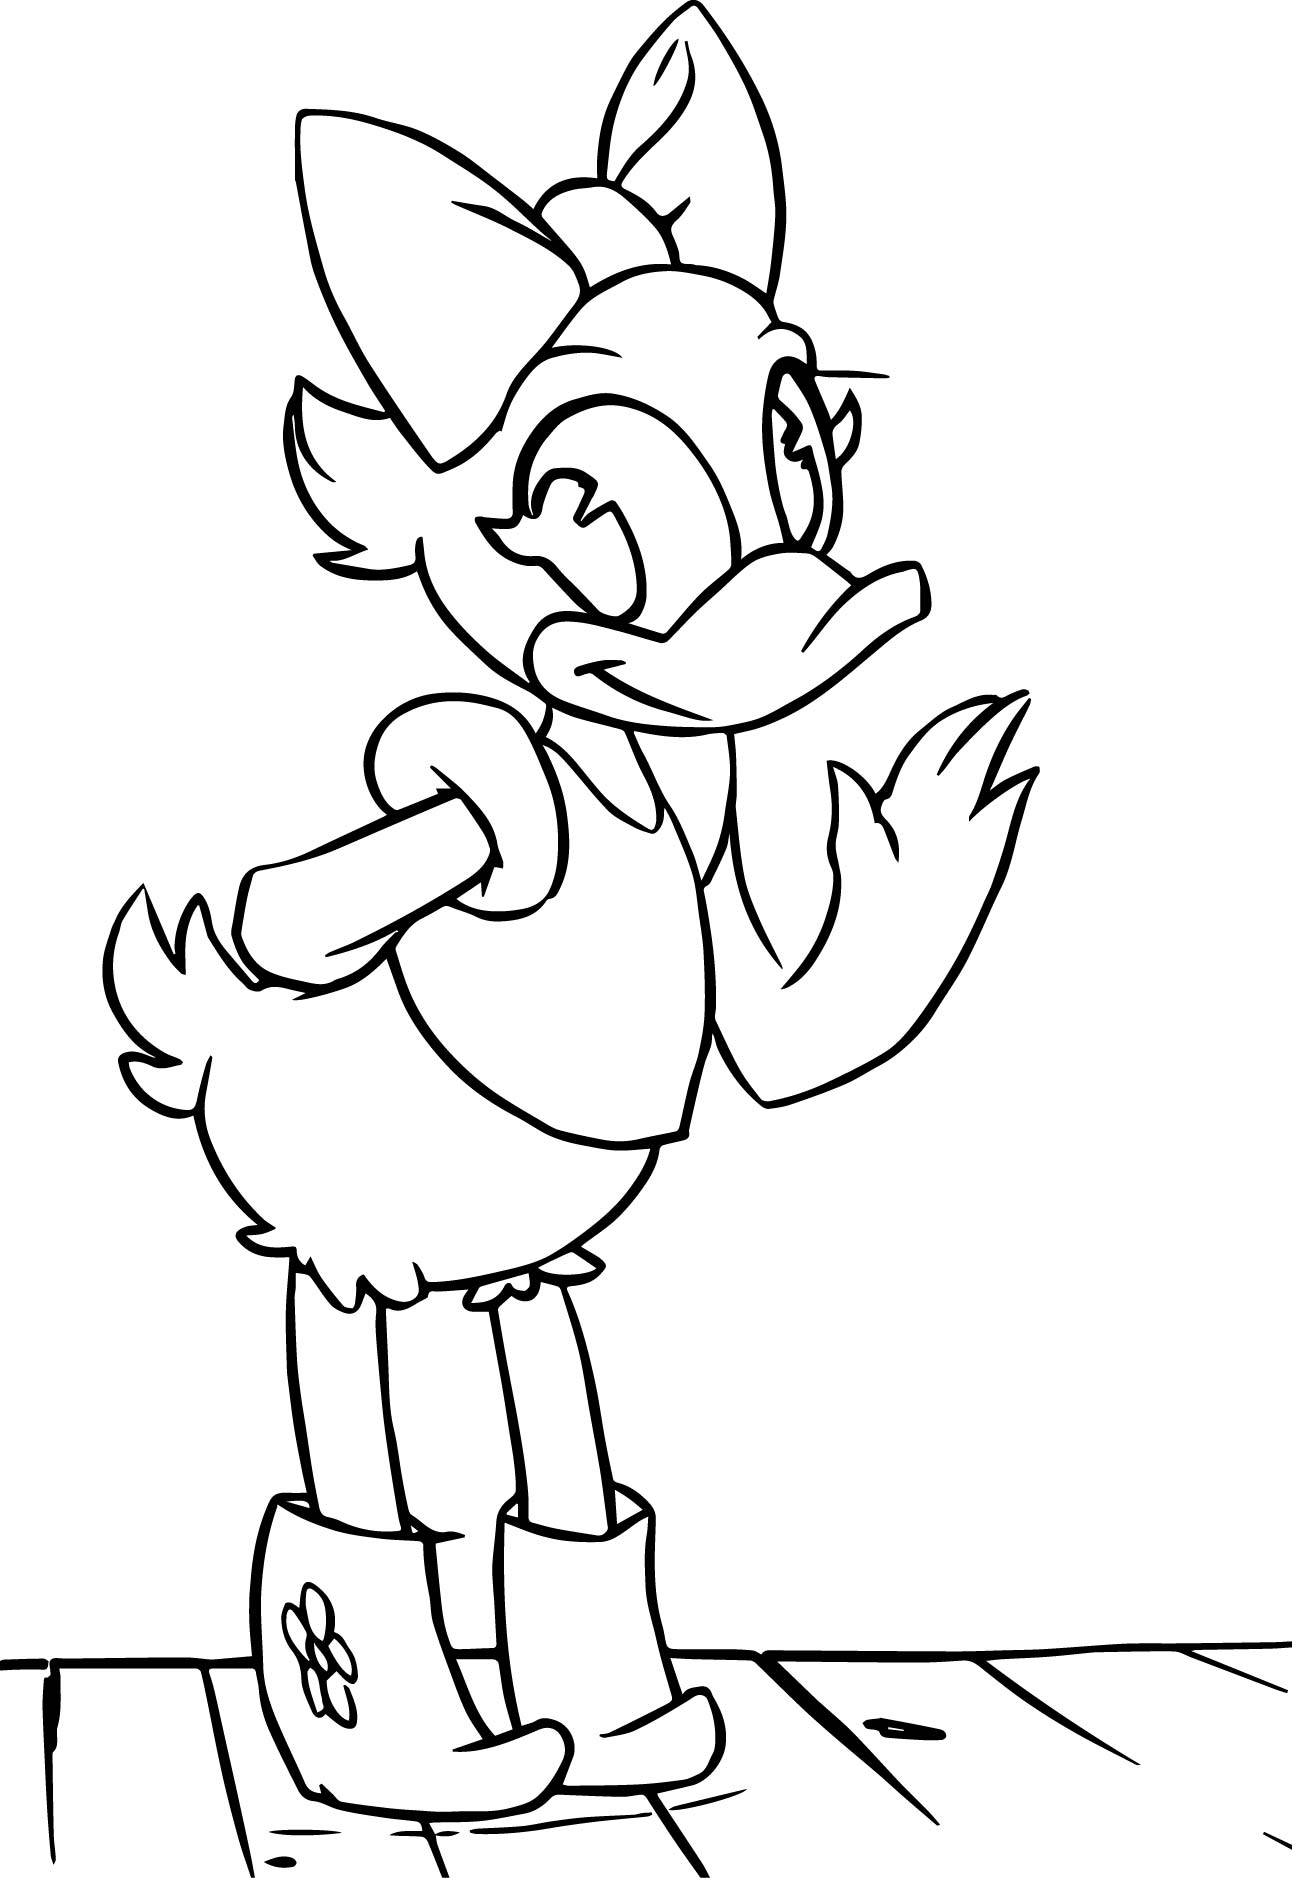 Daisy duck coloring page for Daisy coloring page